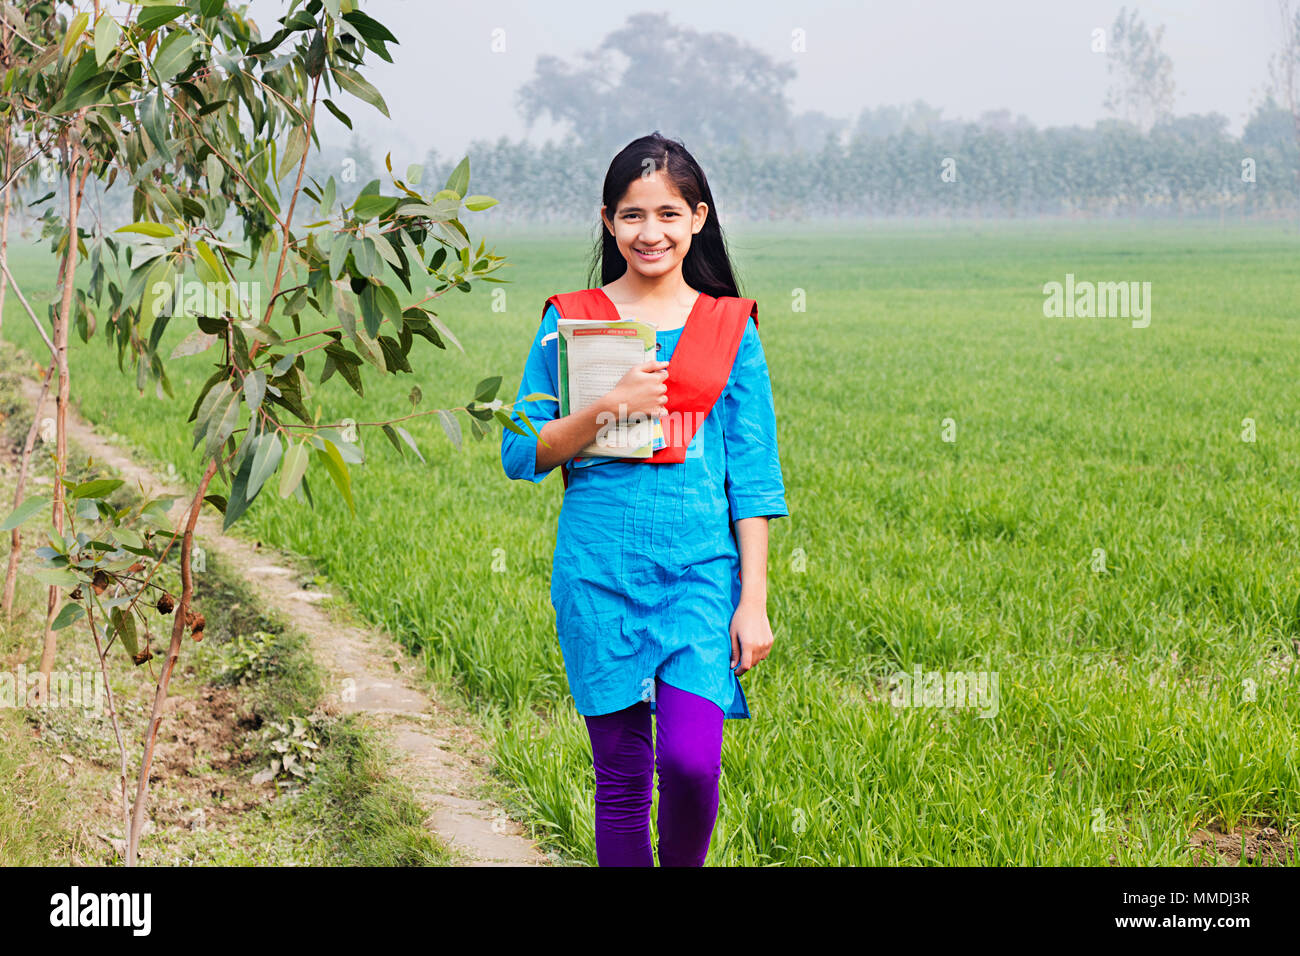 Rural Villager Teenage Girl College Student Holding Books Walking In Farm Stock Image